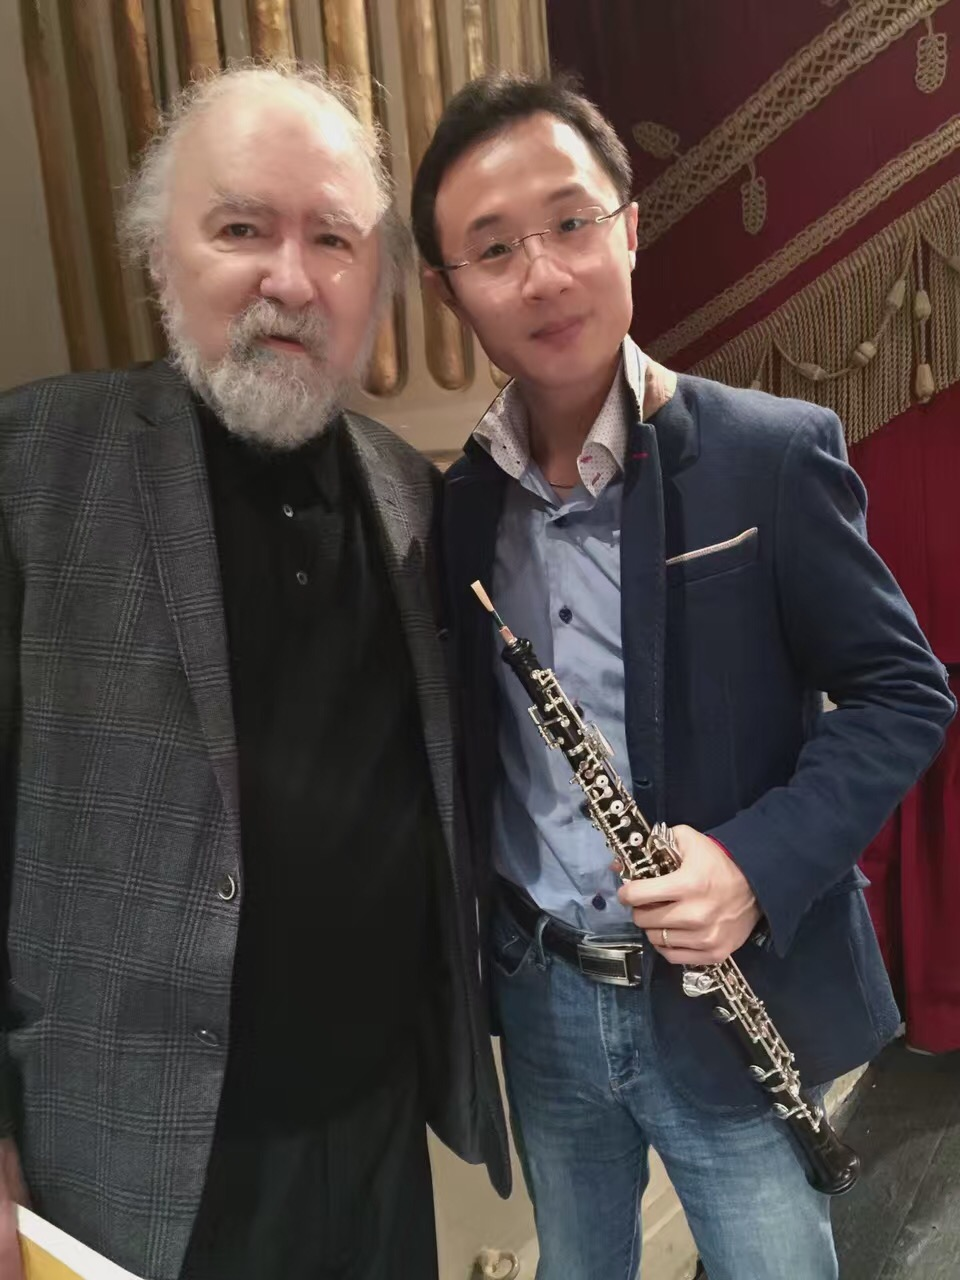 Concert of La Scala with Mr. Radu Lupu